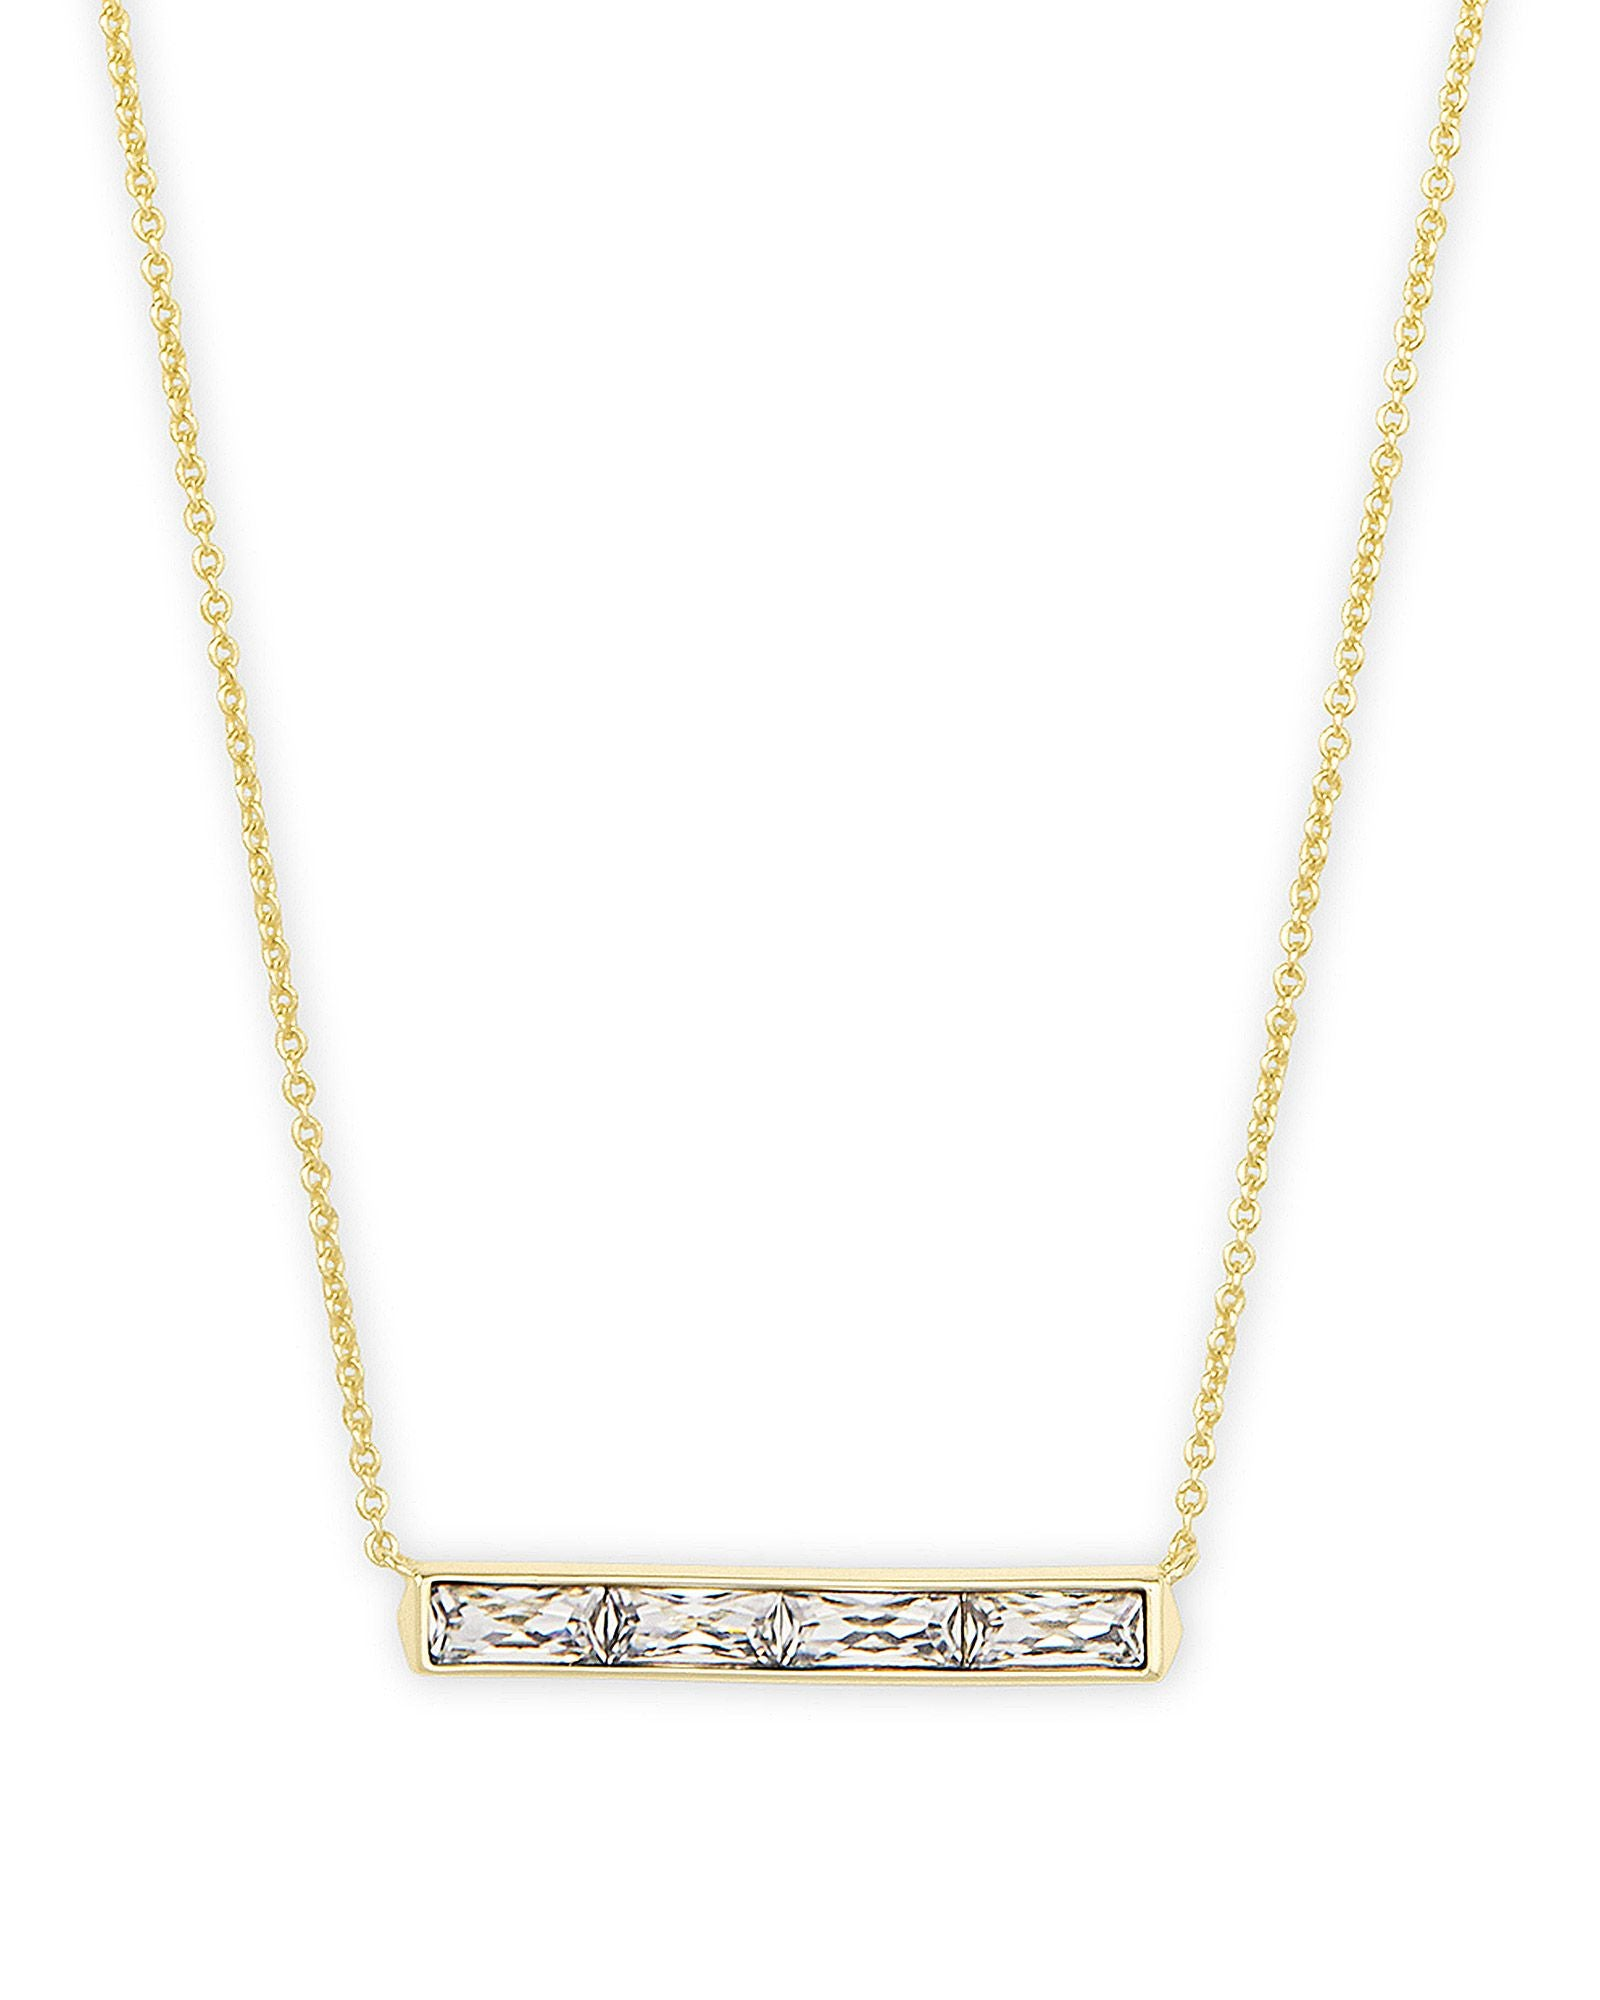 Jack Pendant Necklace Gold White Crystal